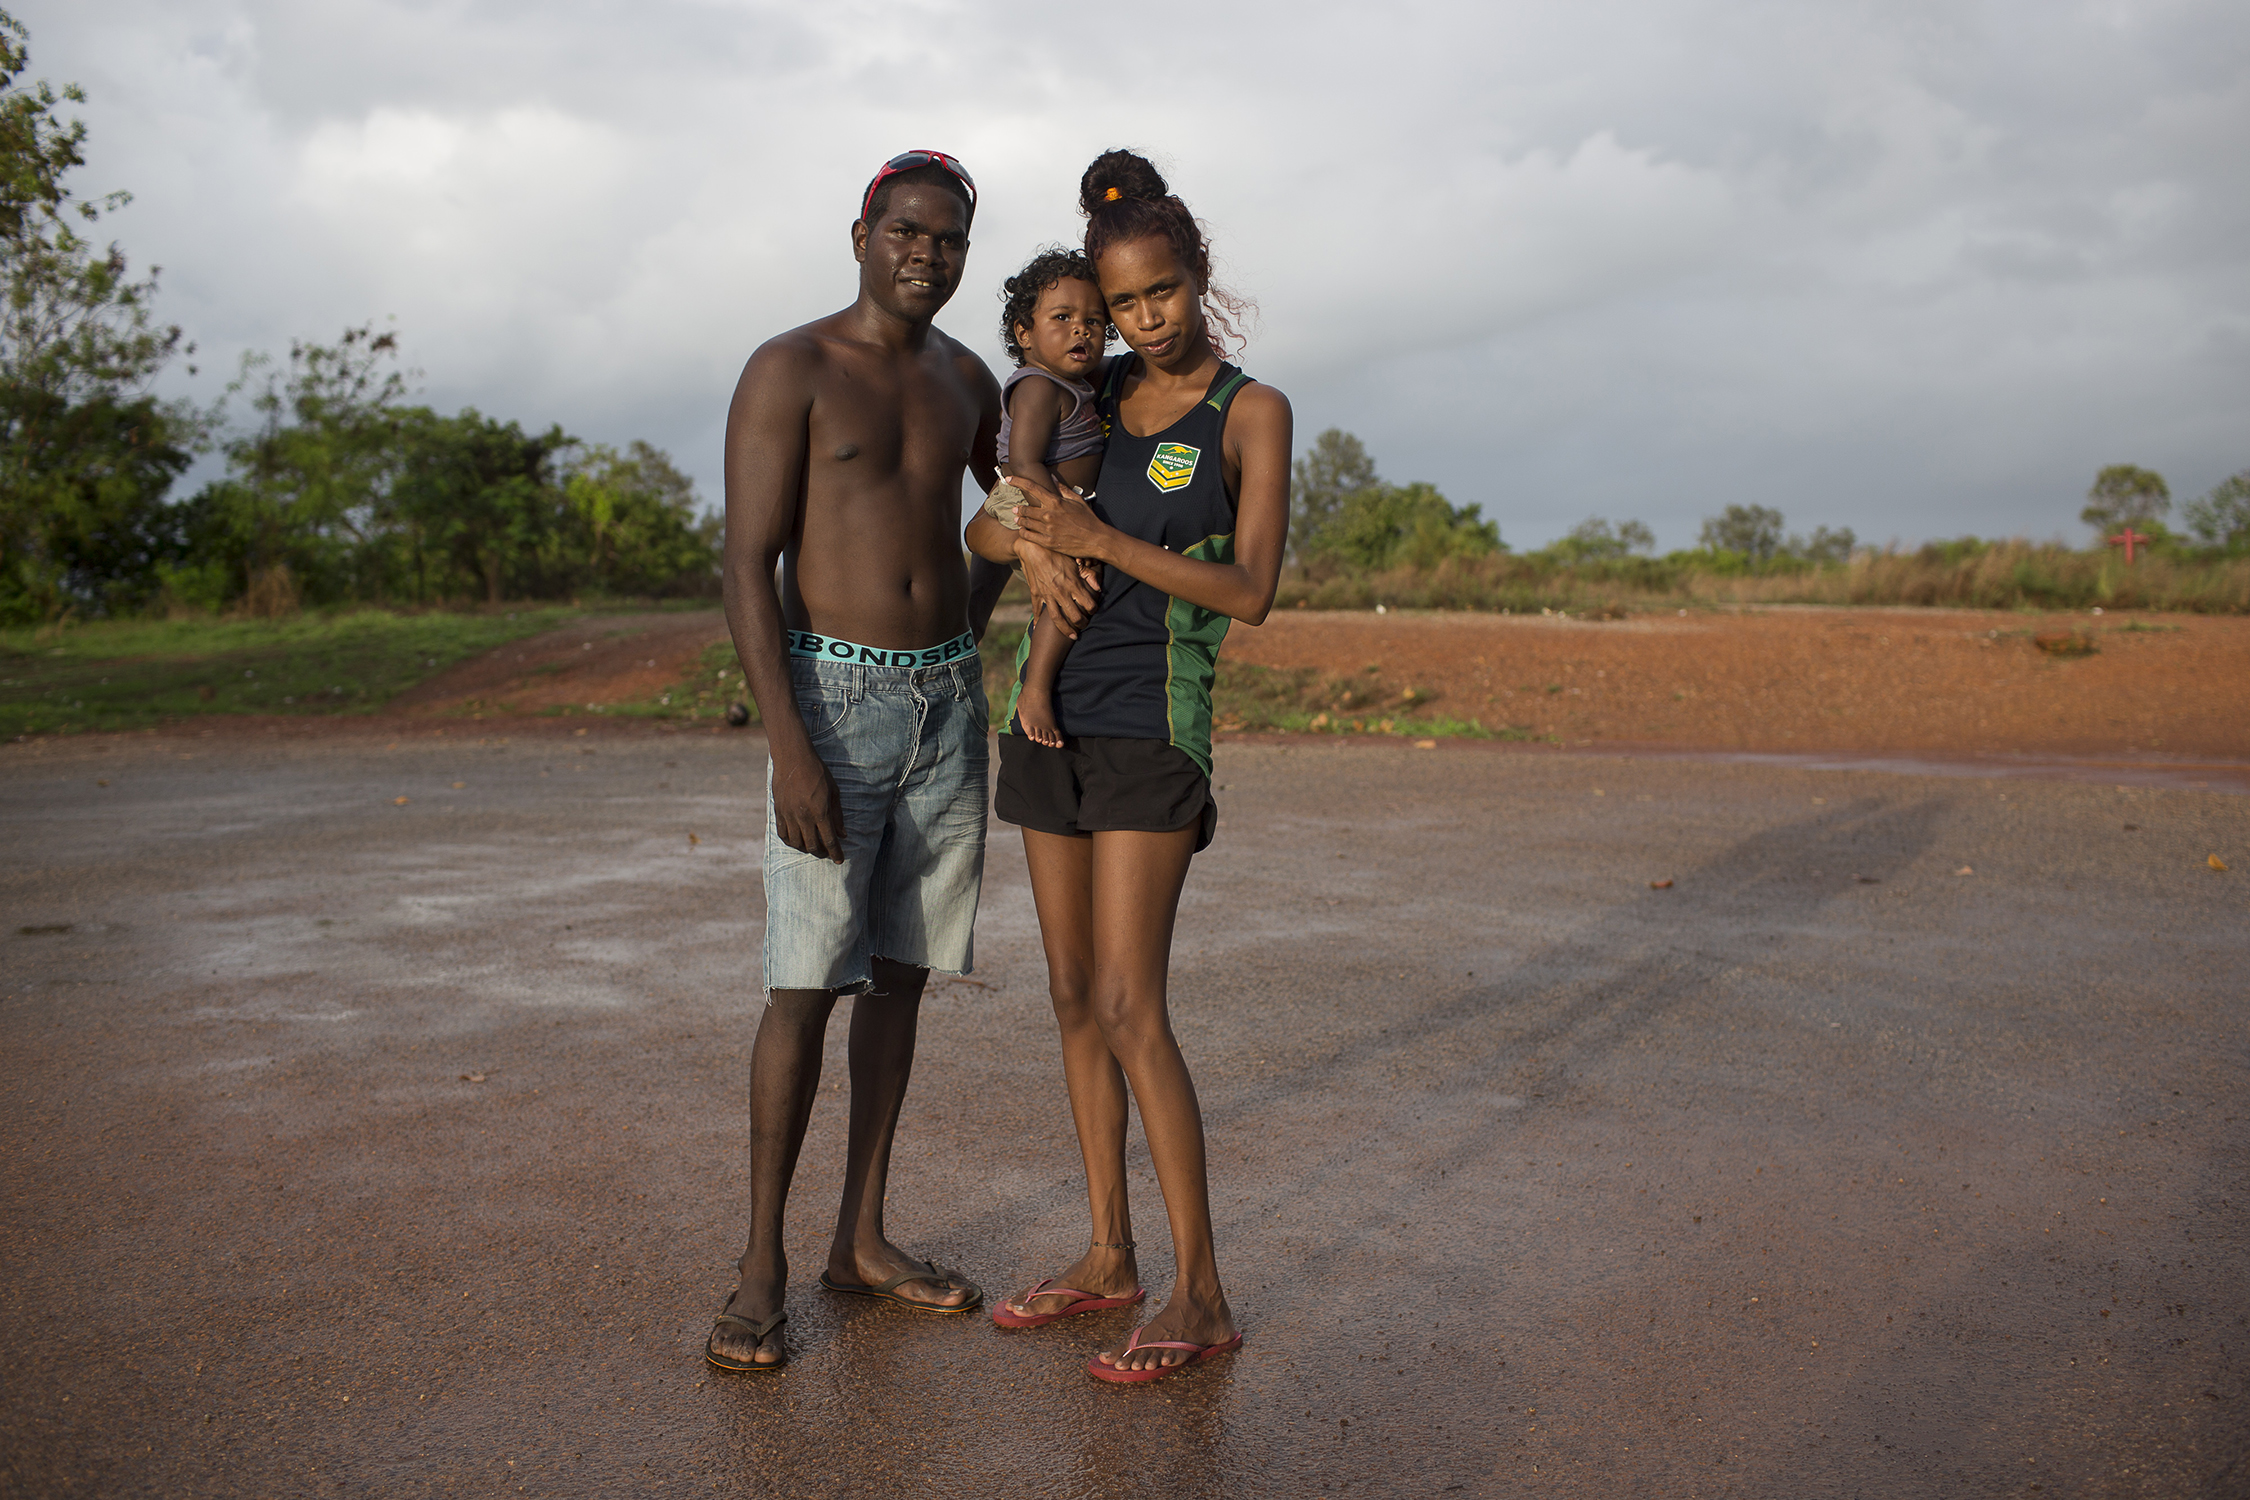 1 in 731 Indigenous people in the Northern Territory suffer from Crusted Scabies